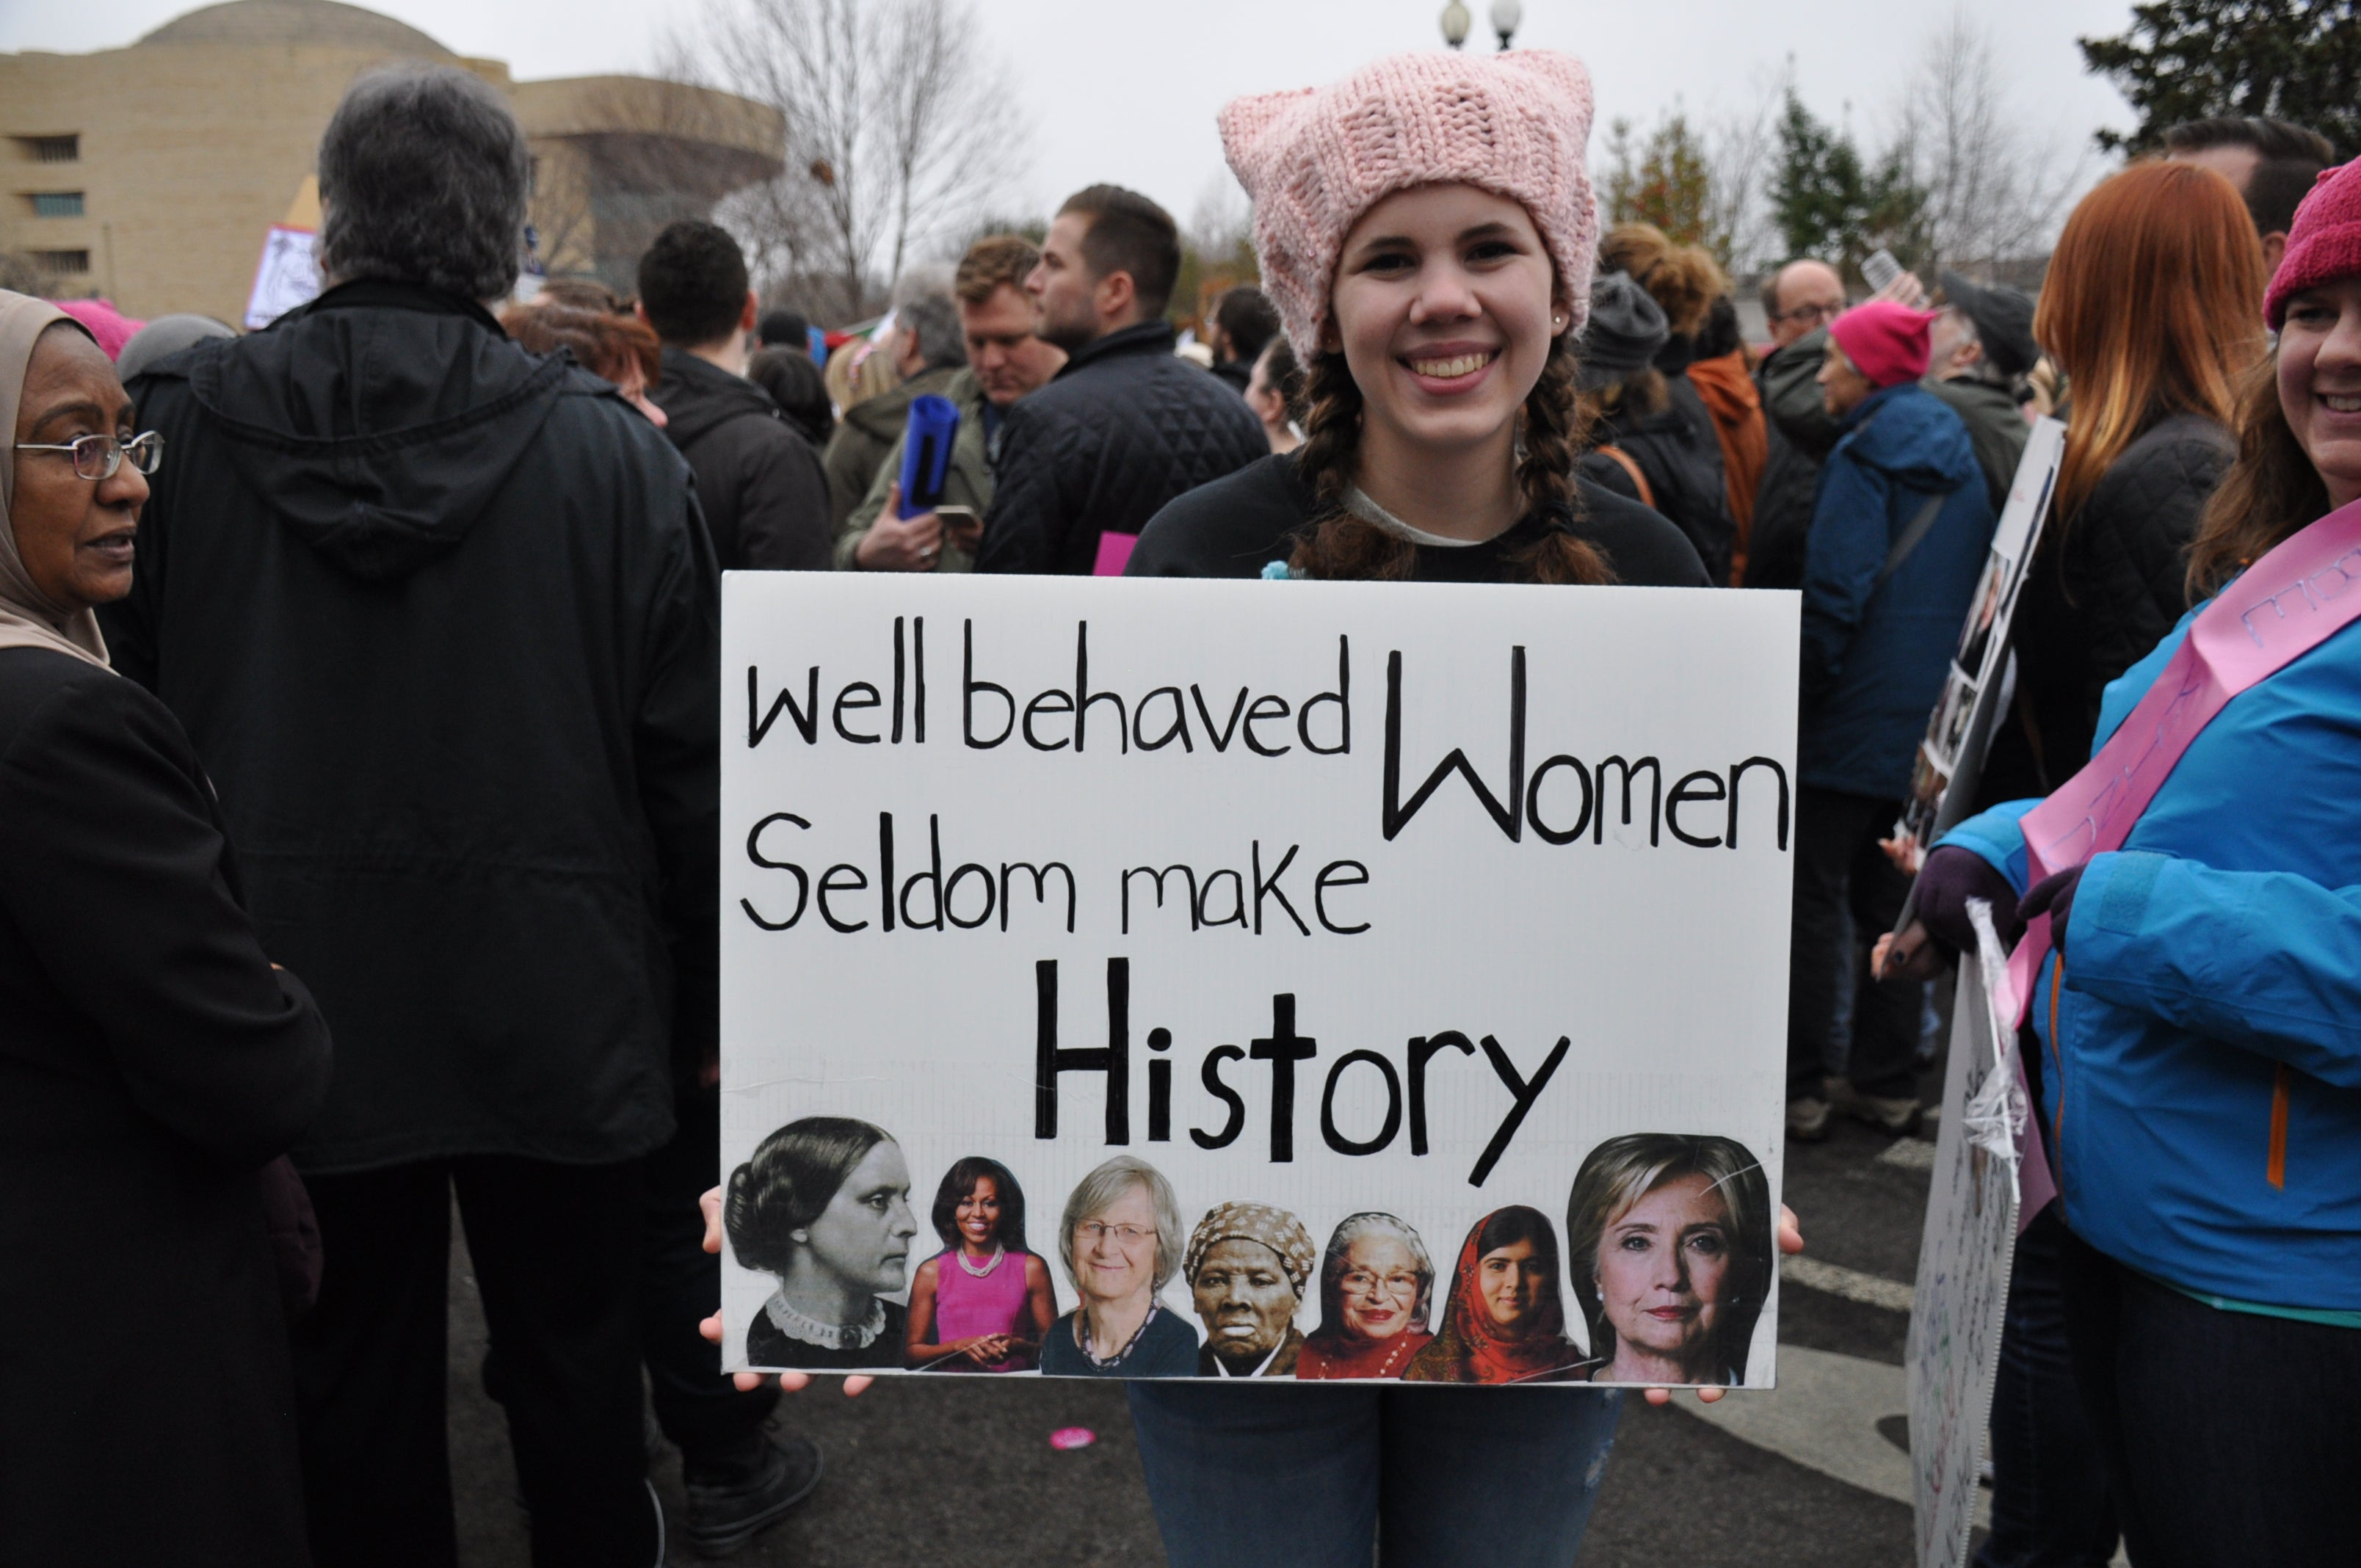 15 Favorite Signs From the DC Women's March 2017 (Social Justice)